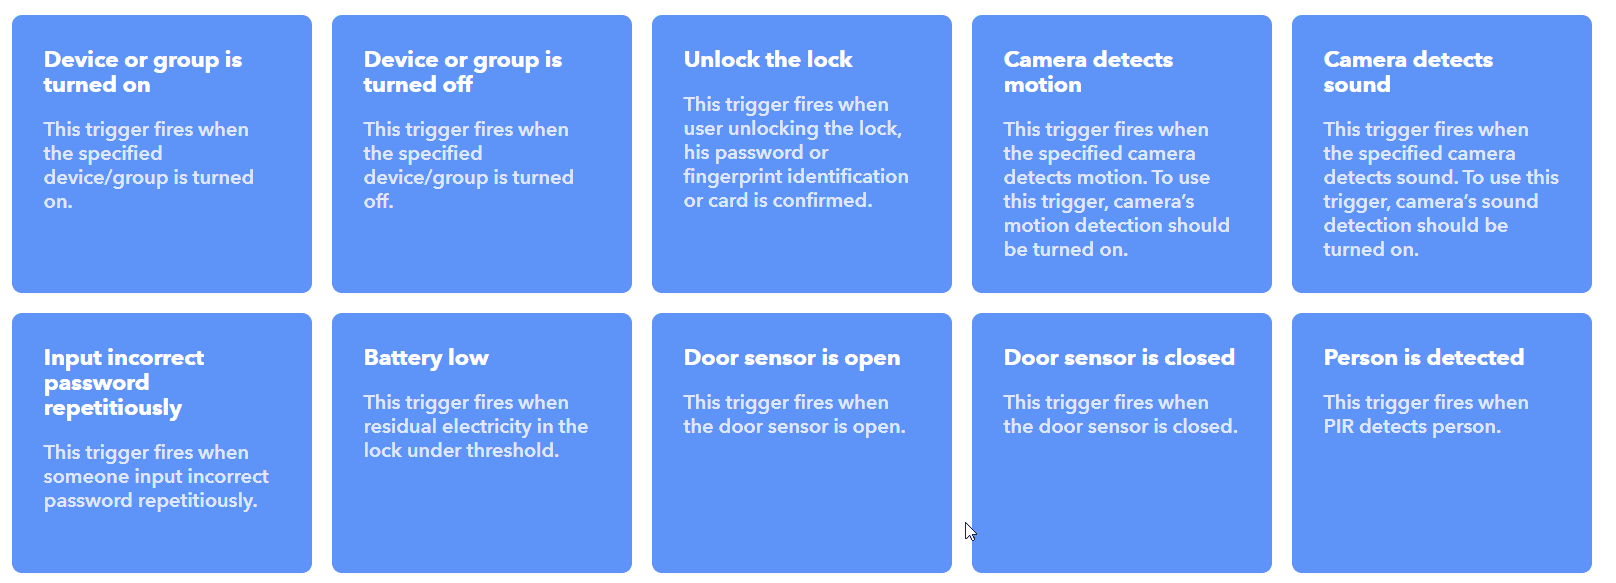 ifttt-smart-life-open-door